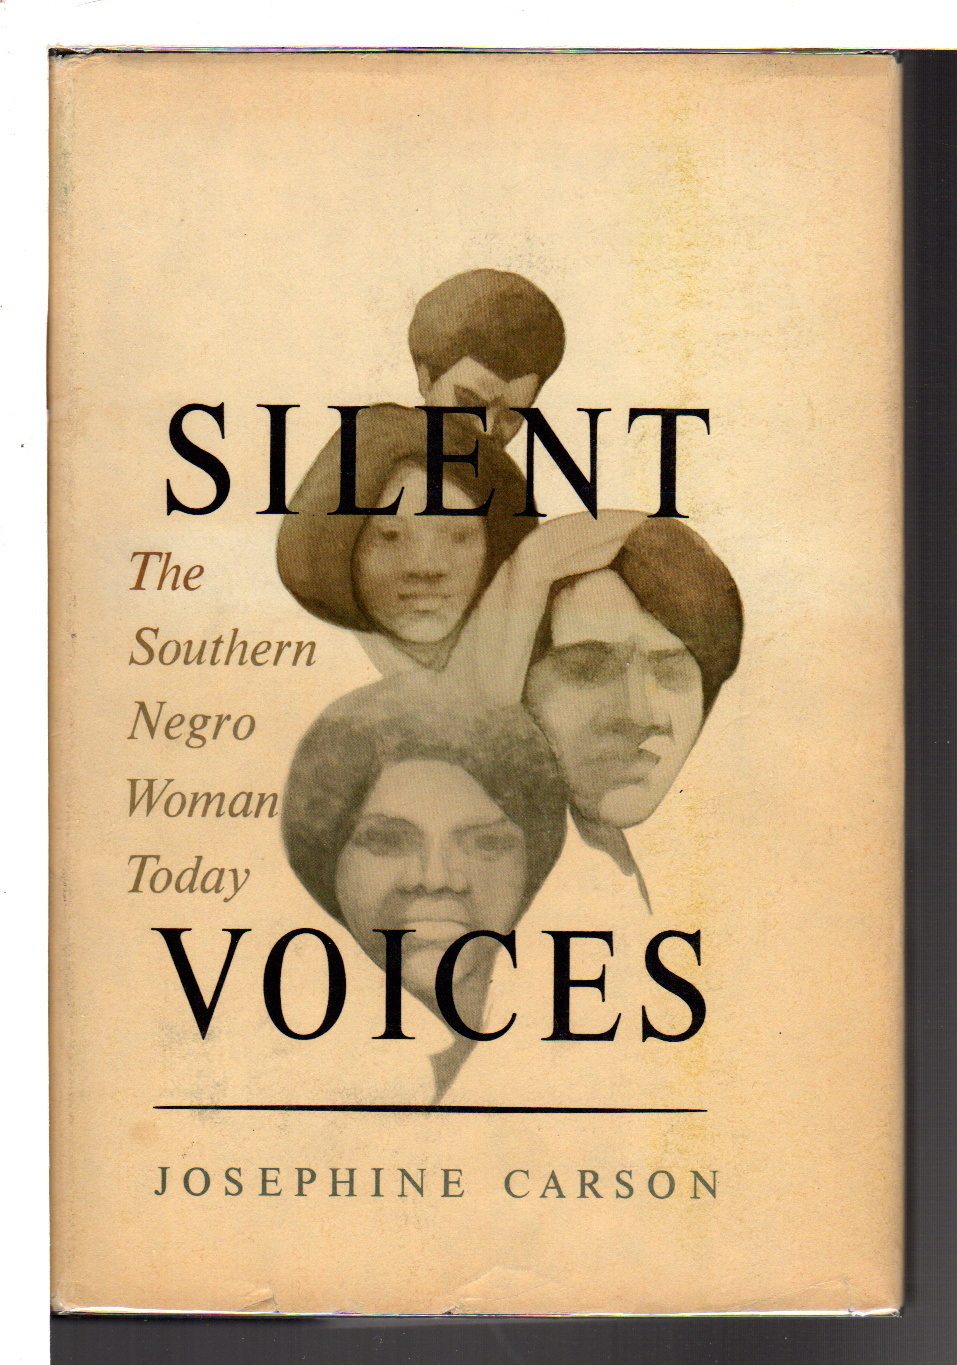 CARSON, JOSEPHINE. - SILENT VOICES: The Southern Negro Woman Today.